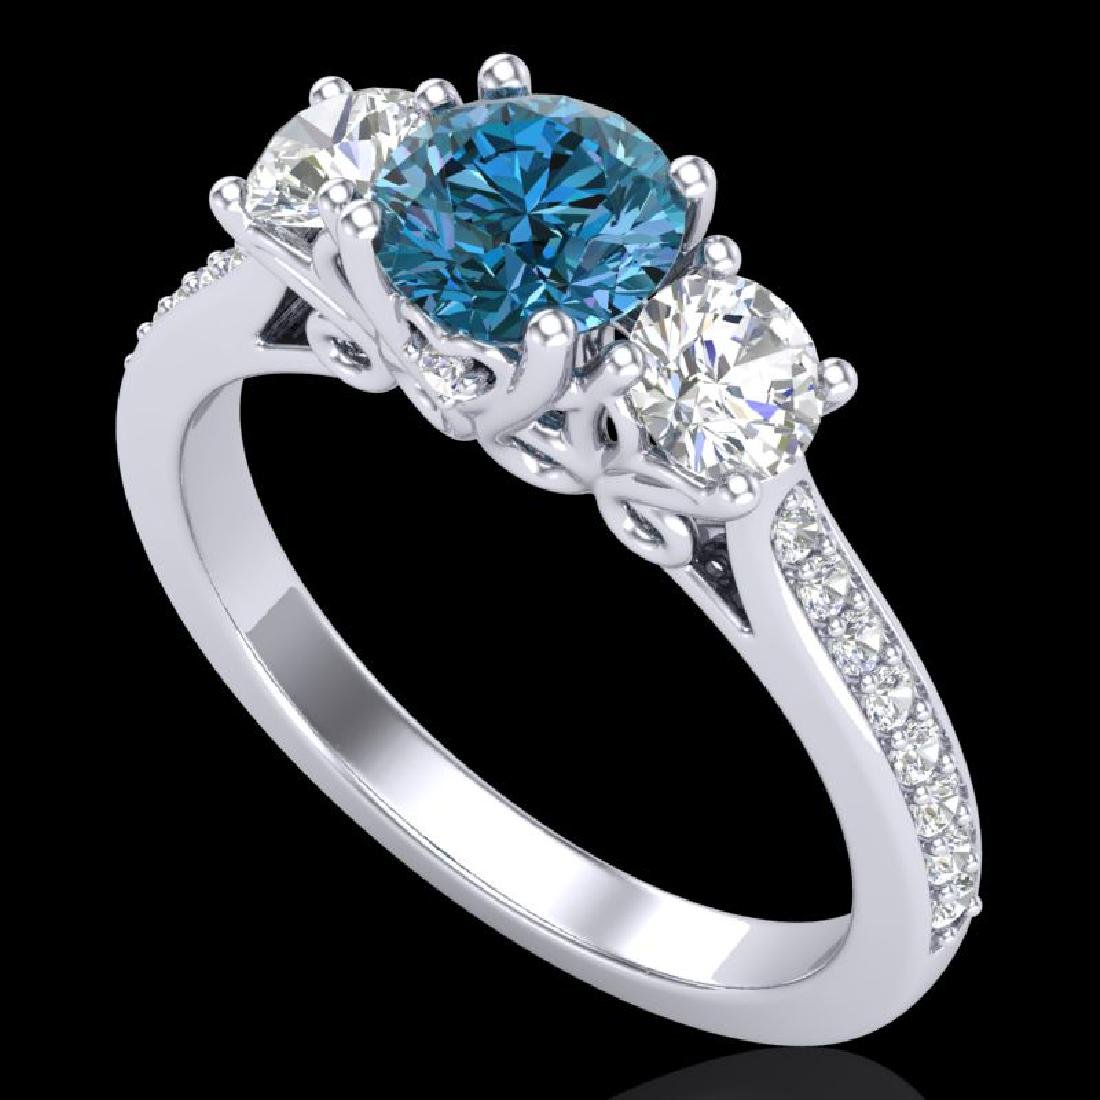 1.67 CTW Intense Blue Diamond Solitaire Art Deco 3